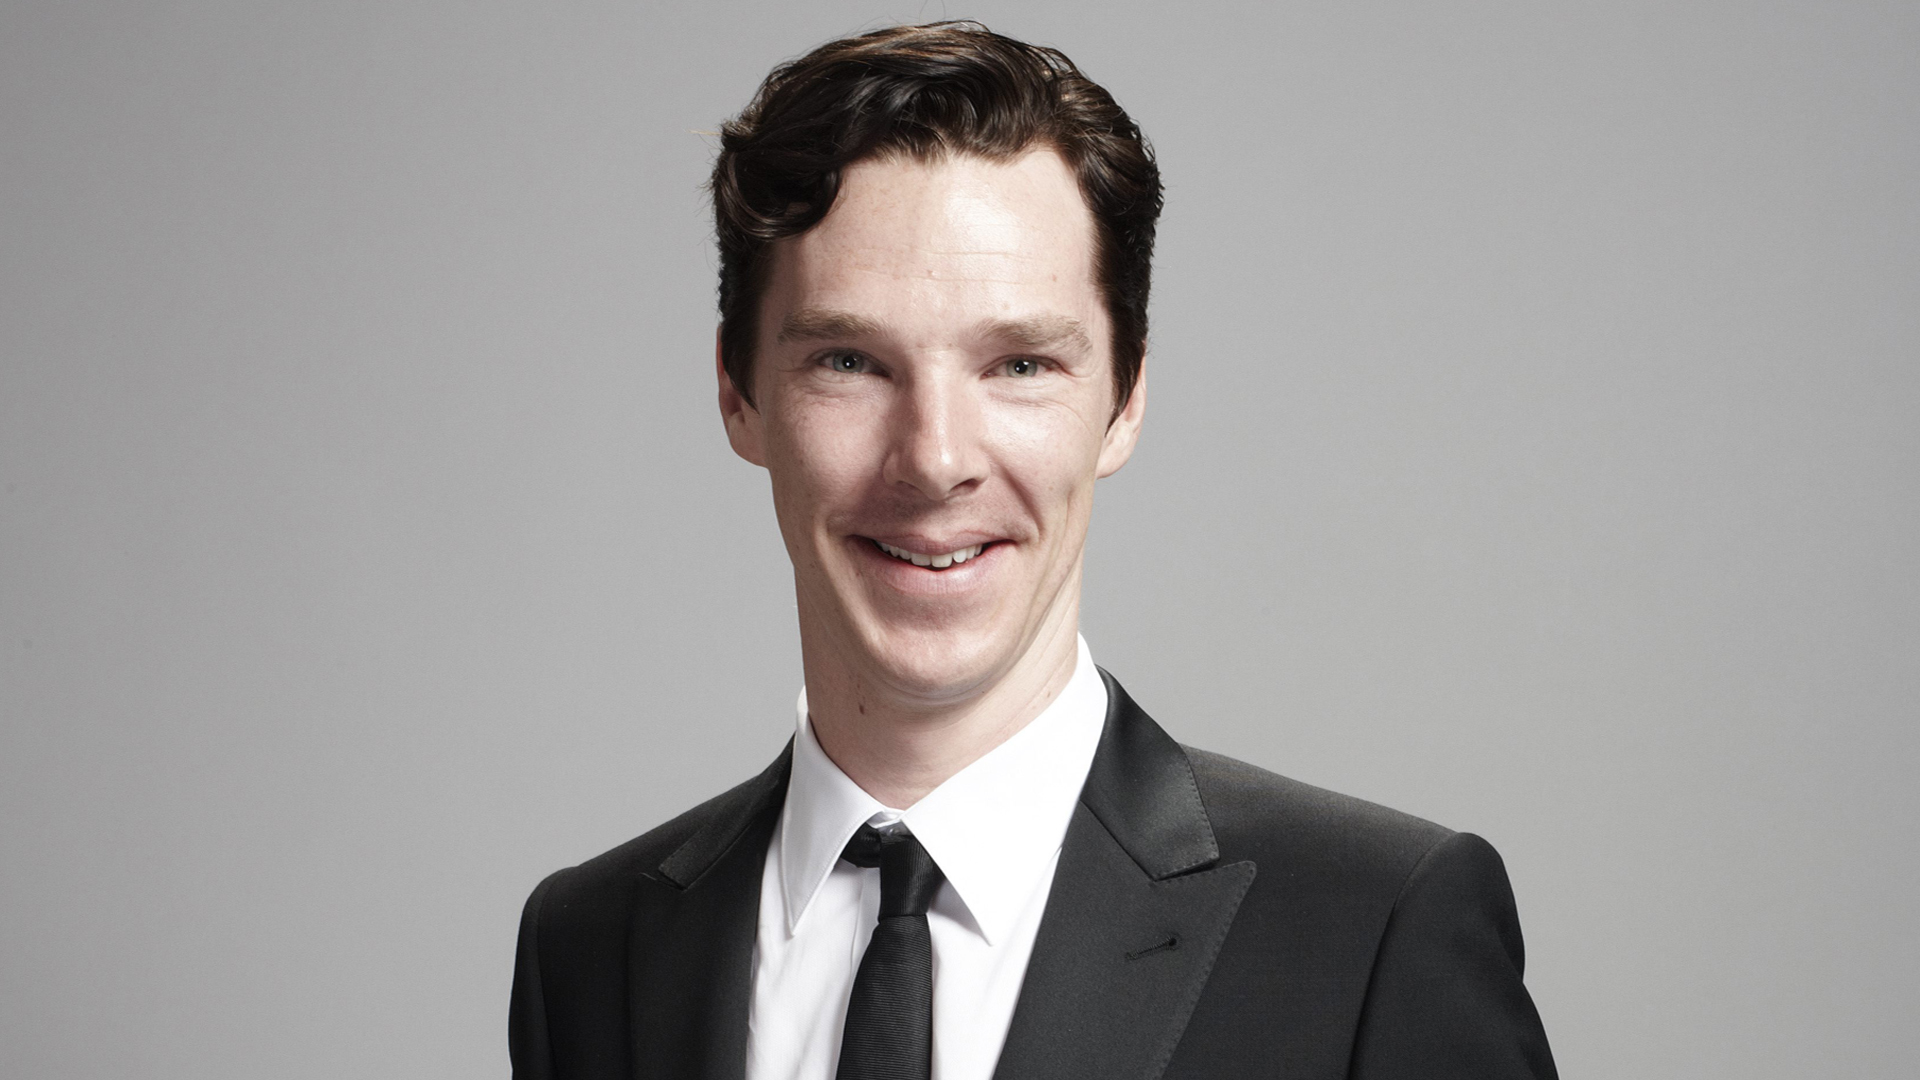 Benedict Cumberbatch Smile Wallpaper 56405 1920x1080 px ...